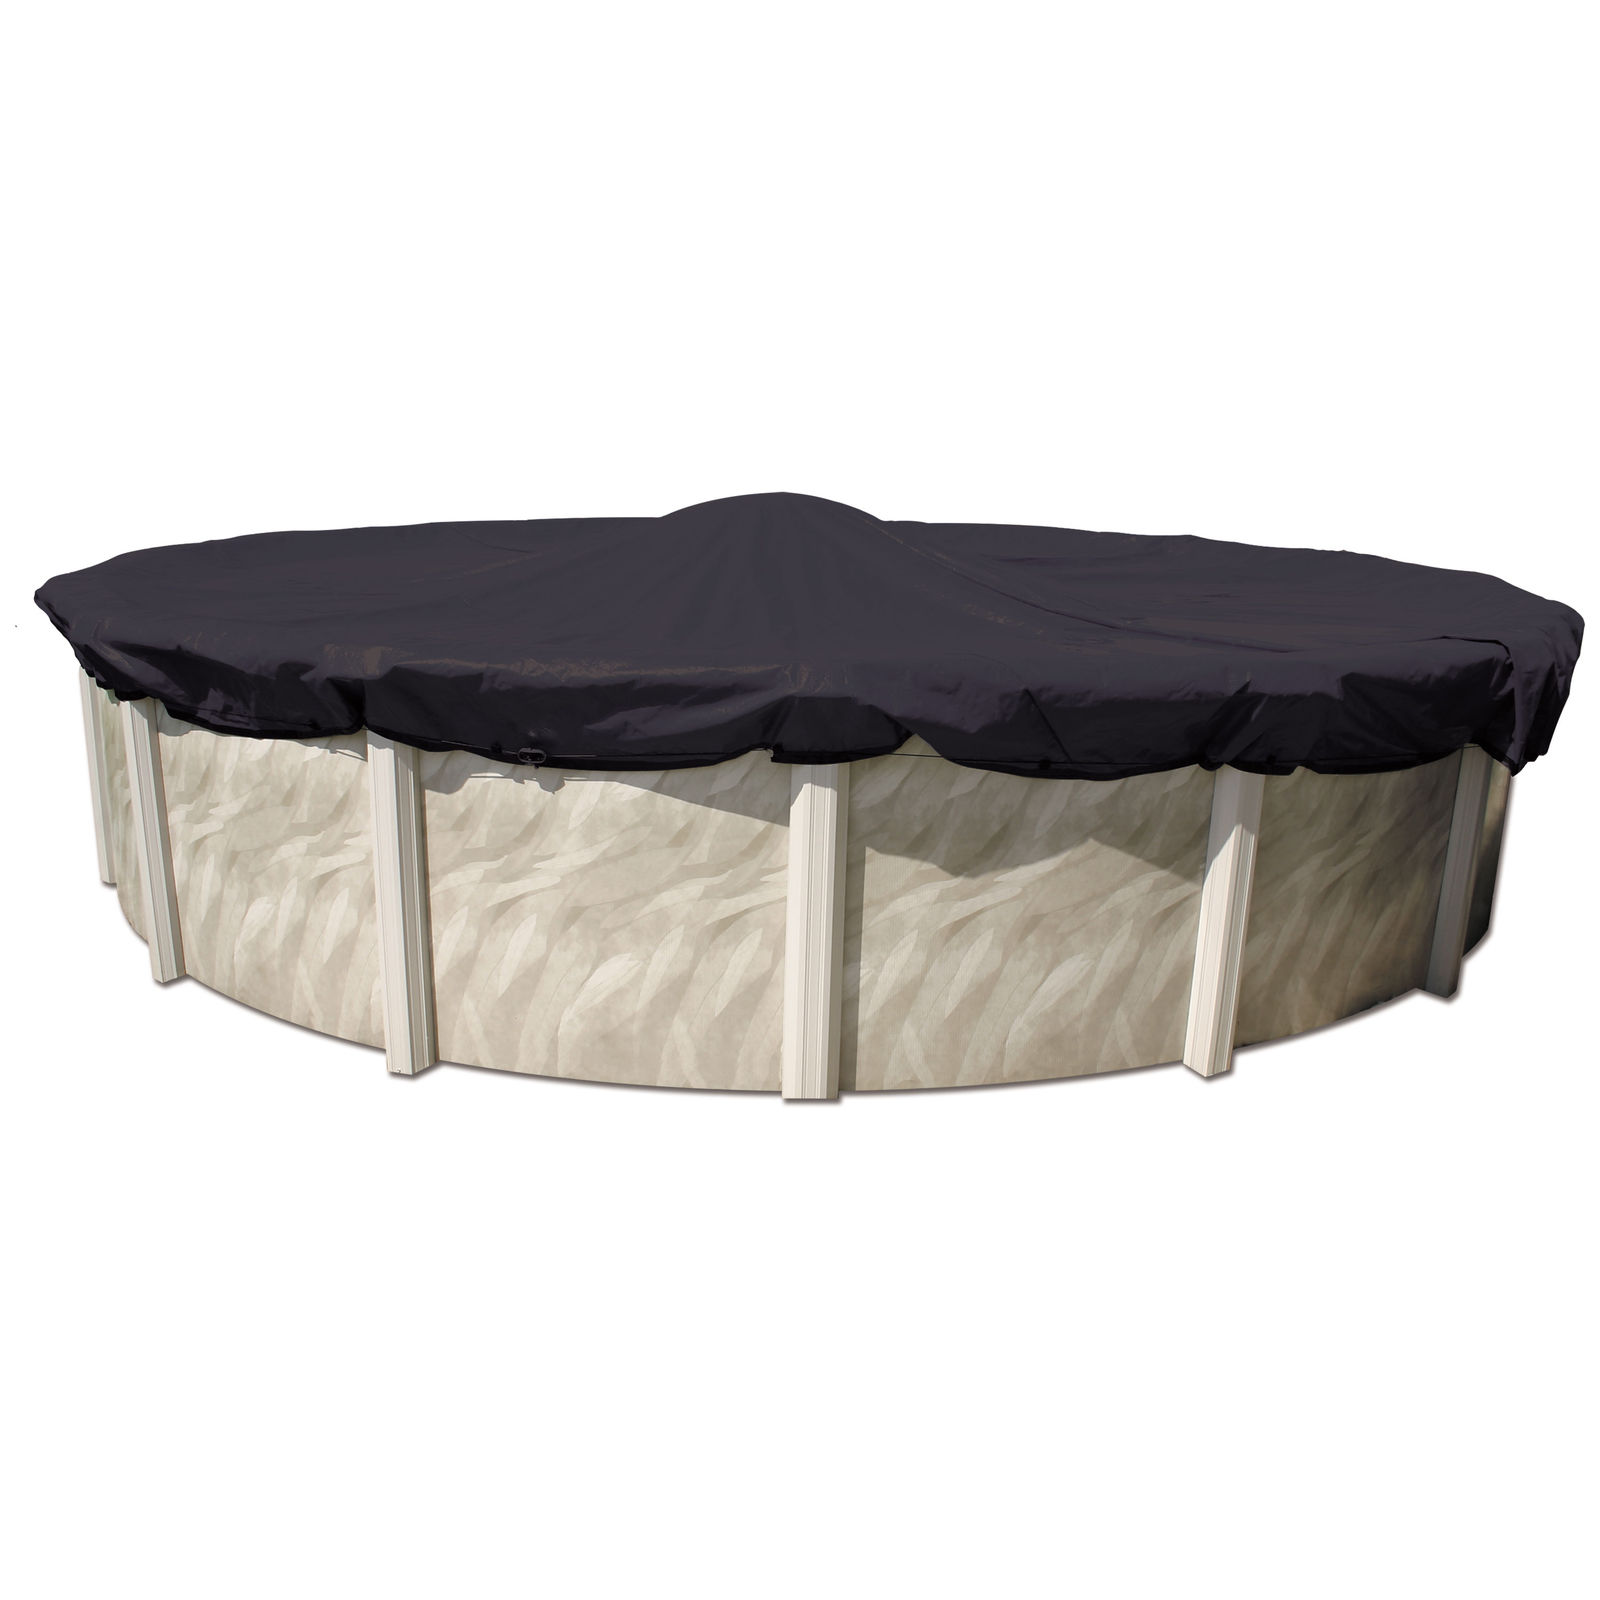 Above Ground Pool Winter Cover Details About 28 Ft Round Above Ground Swimming Pool Winter Cover 8 Year Warranty